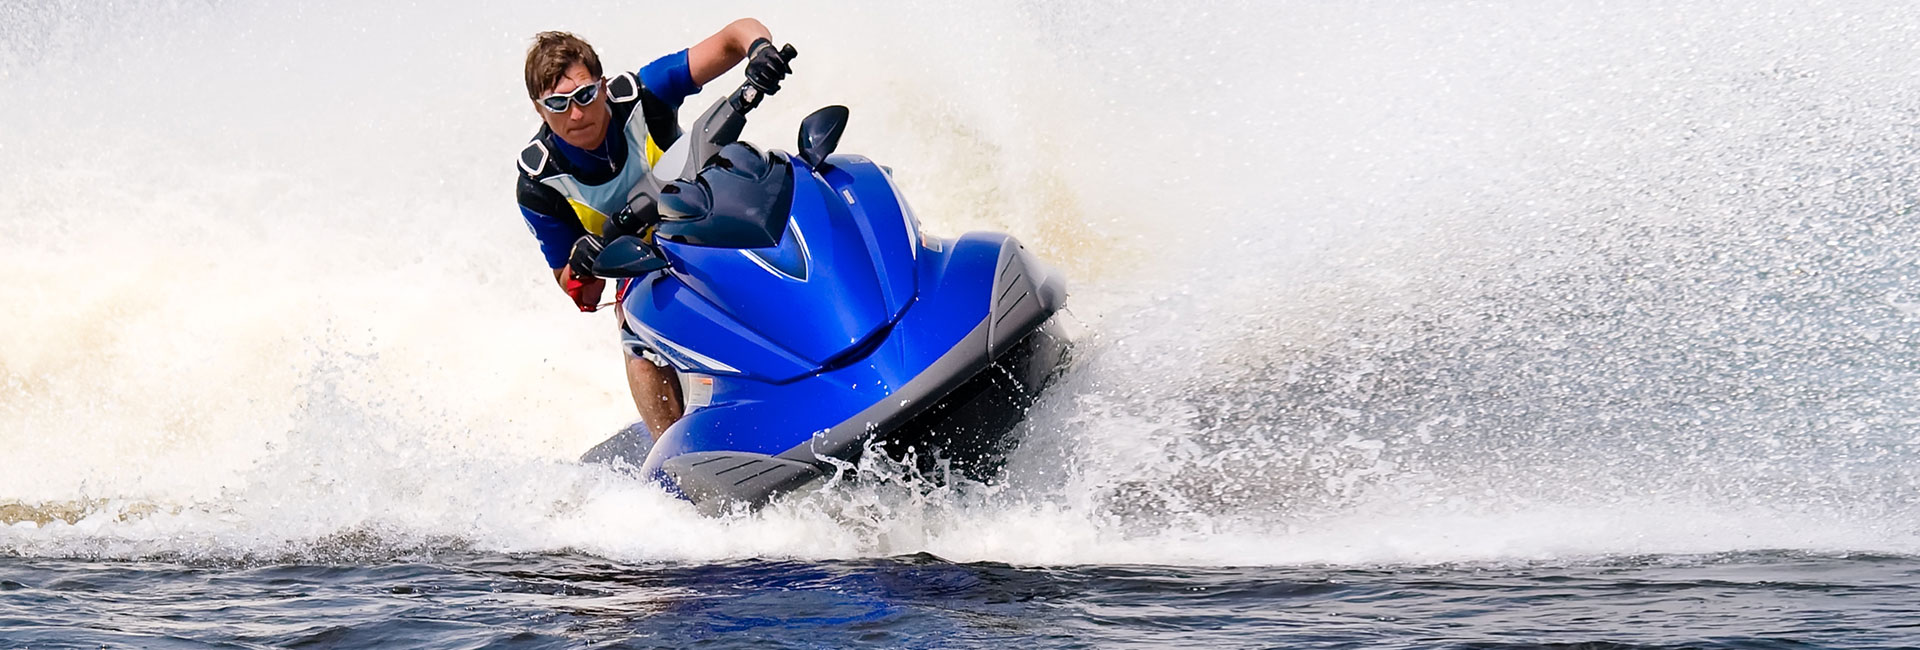 cf46c3a5 VARTA® batteries are the smart choice for riders of PWC Personal Watercraft  such as Jetski ...